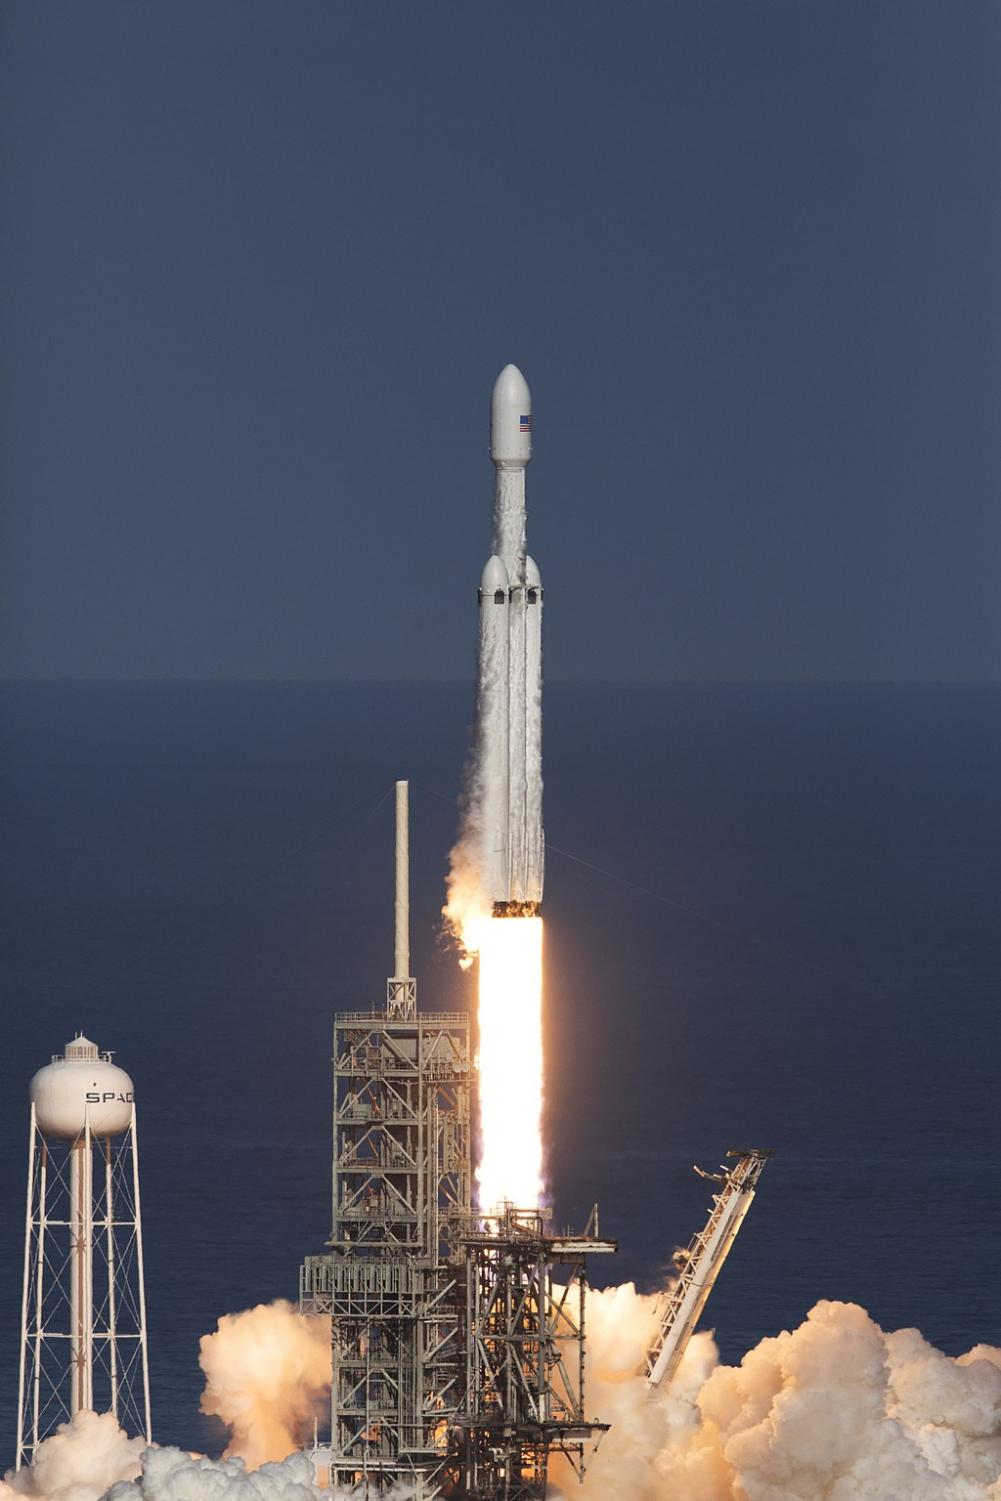 SpaceX launches Falcon Heavy rocket – The Guilfordian